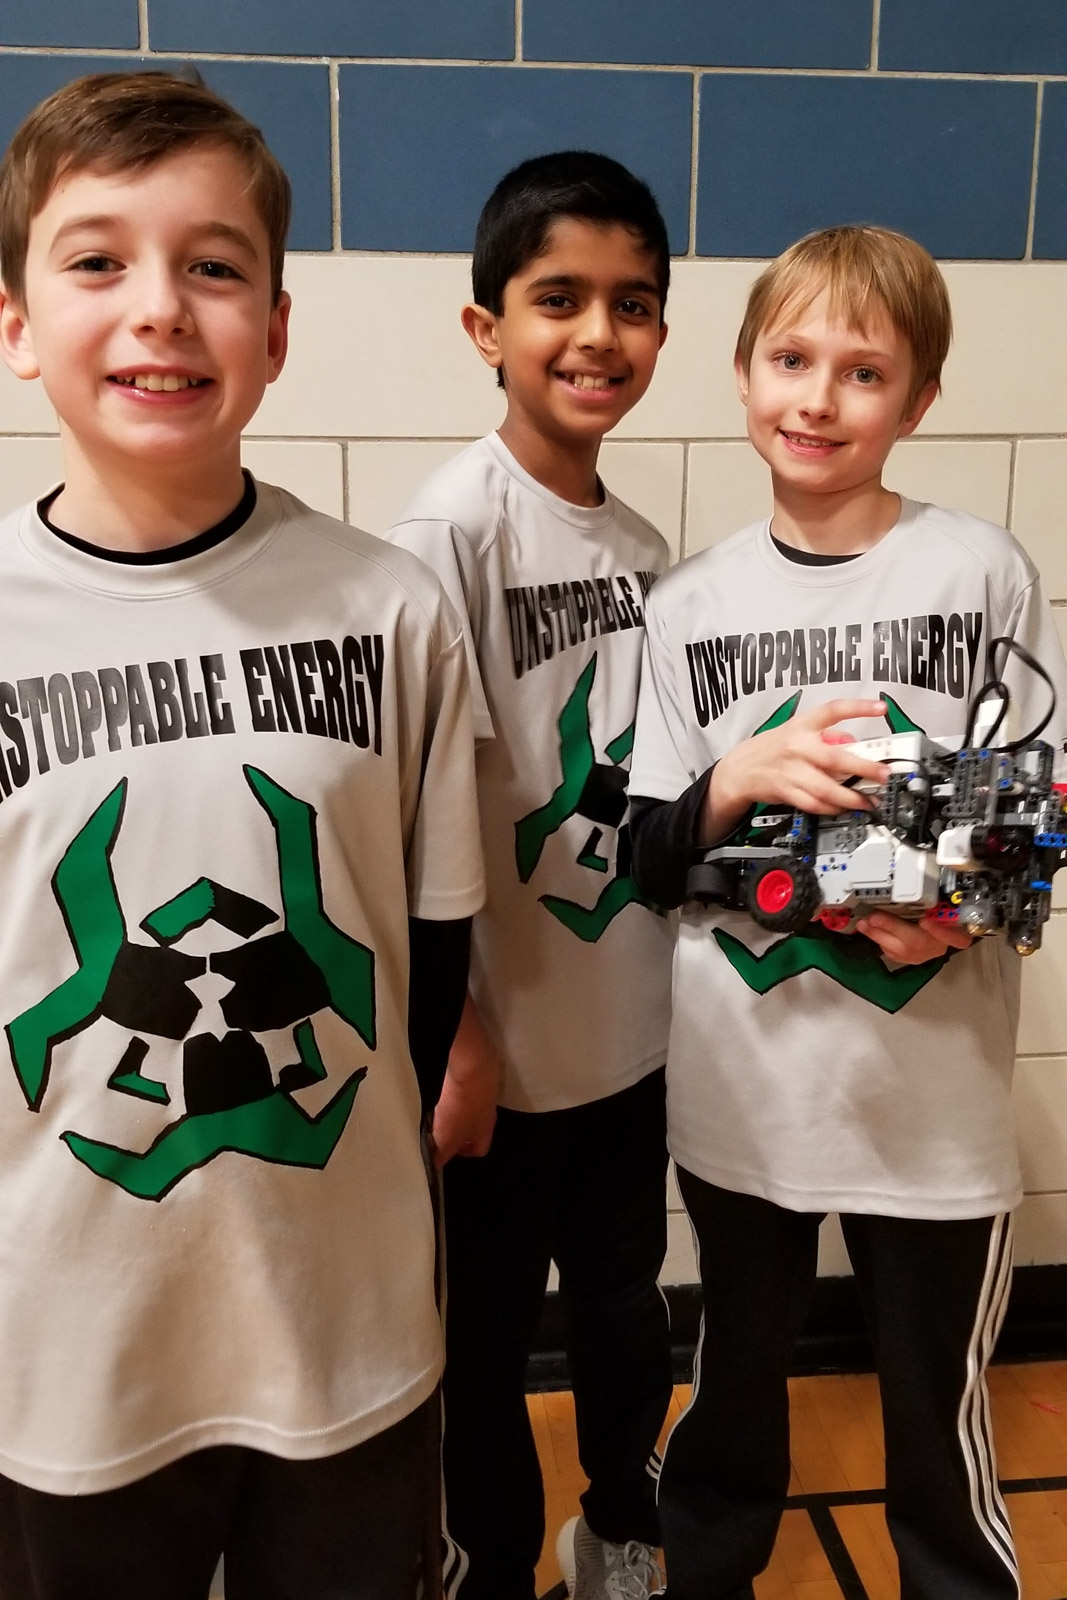 2018 Lego Robotics Competition - Team Unstoppable Energy-3